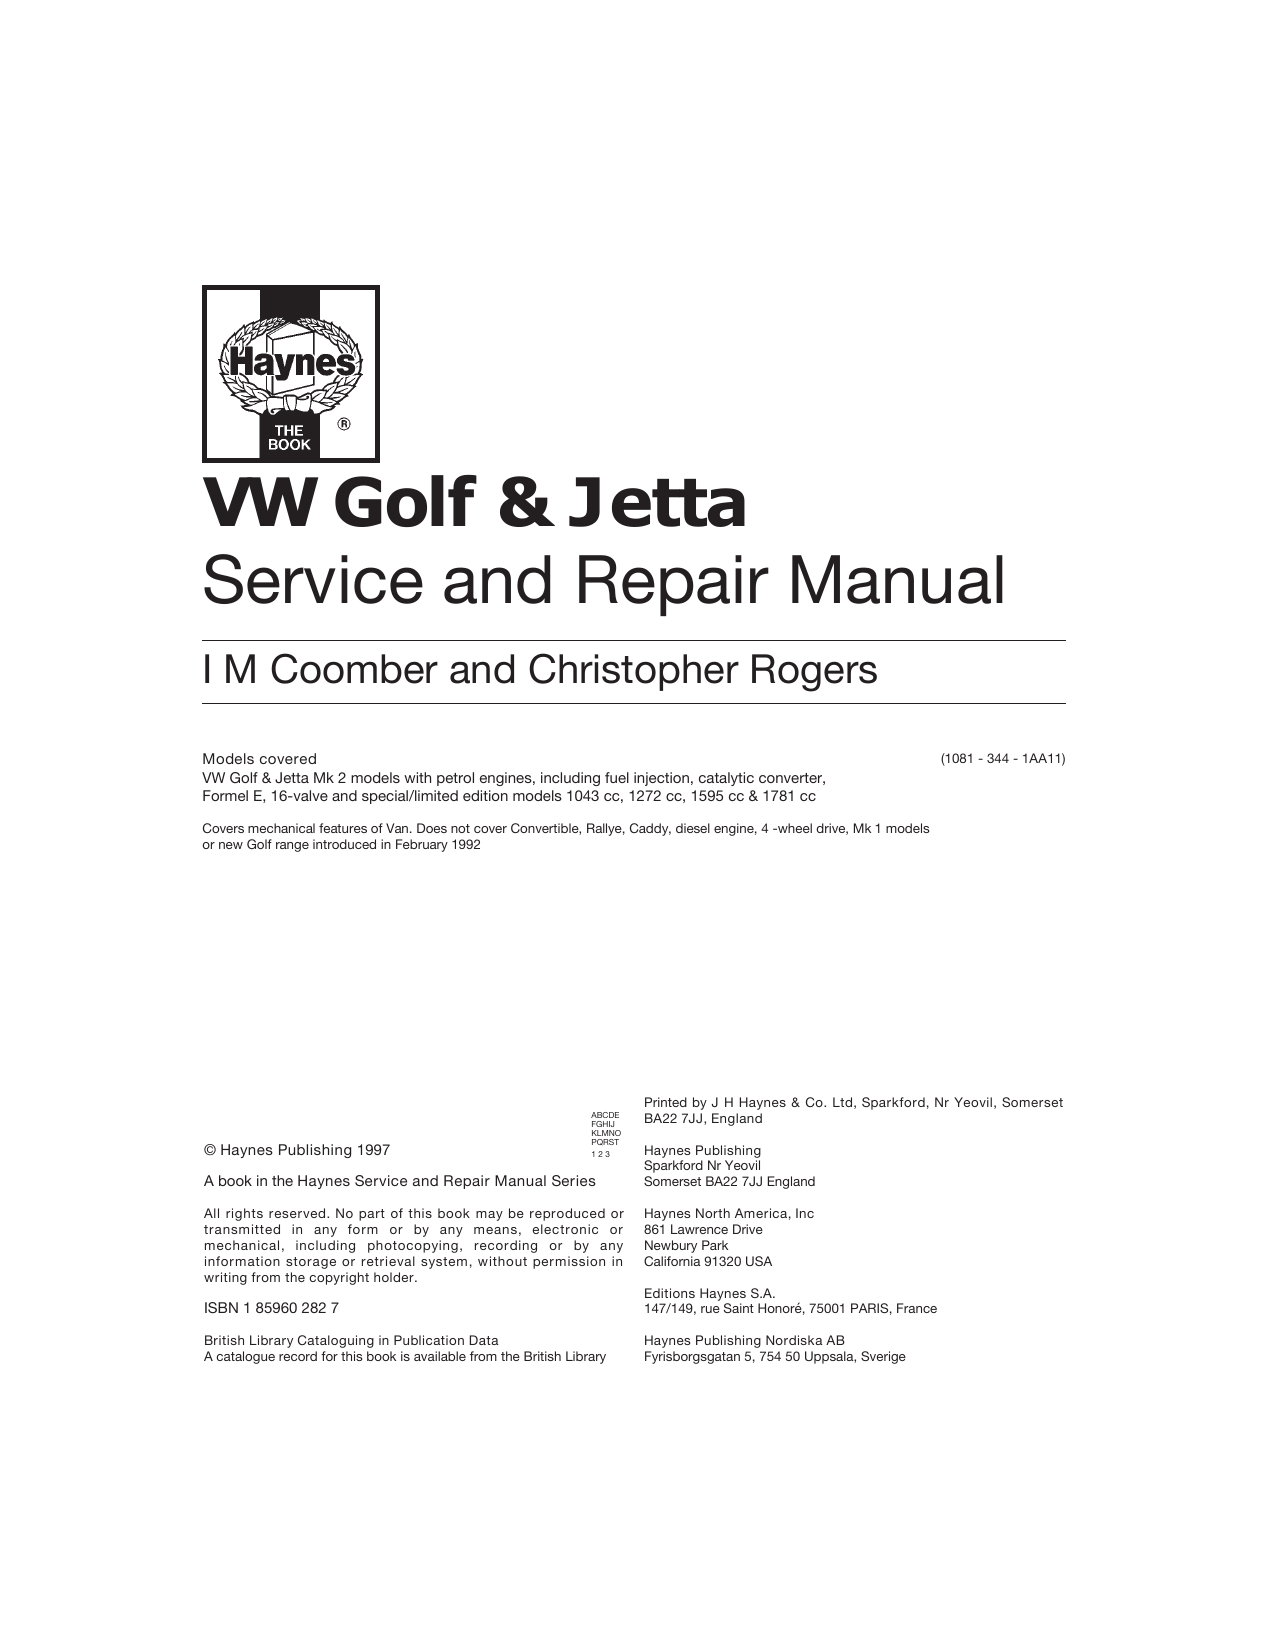 volkswagen golf service manual free pdf download 310 pages rh manualagent com